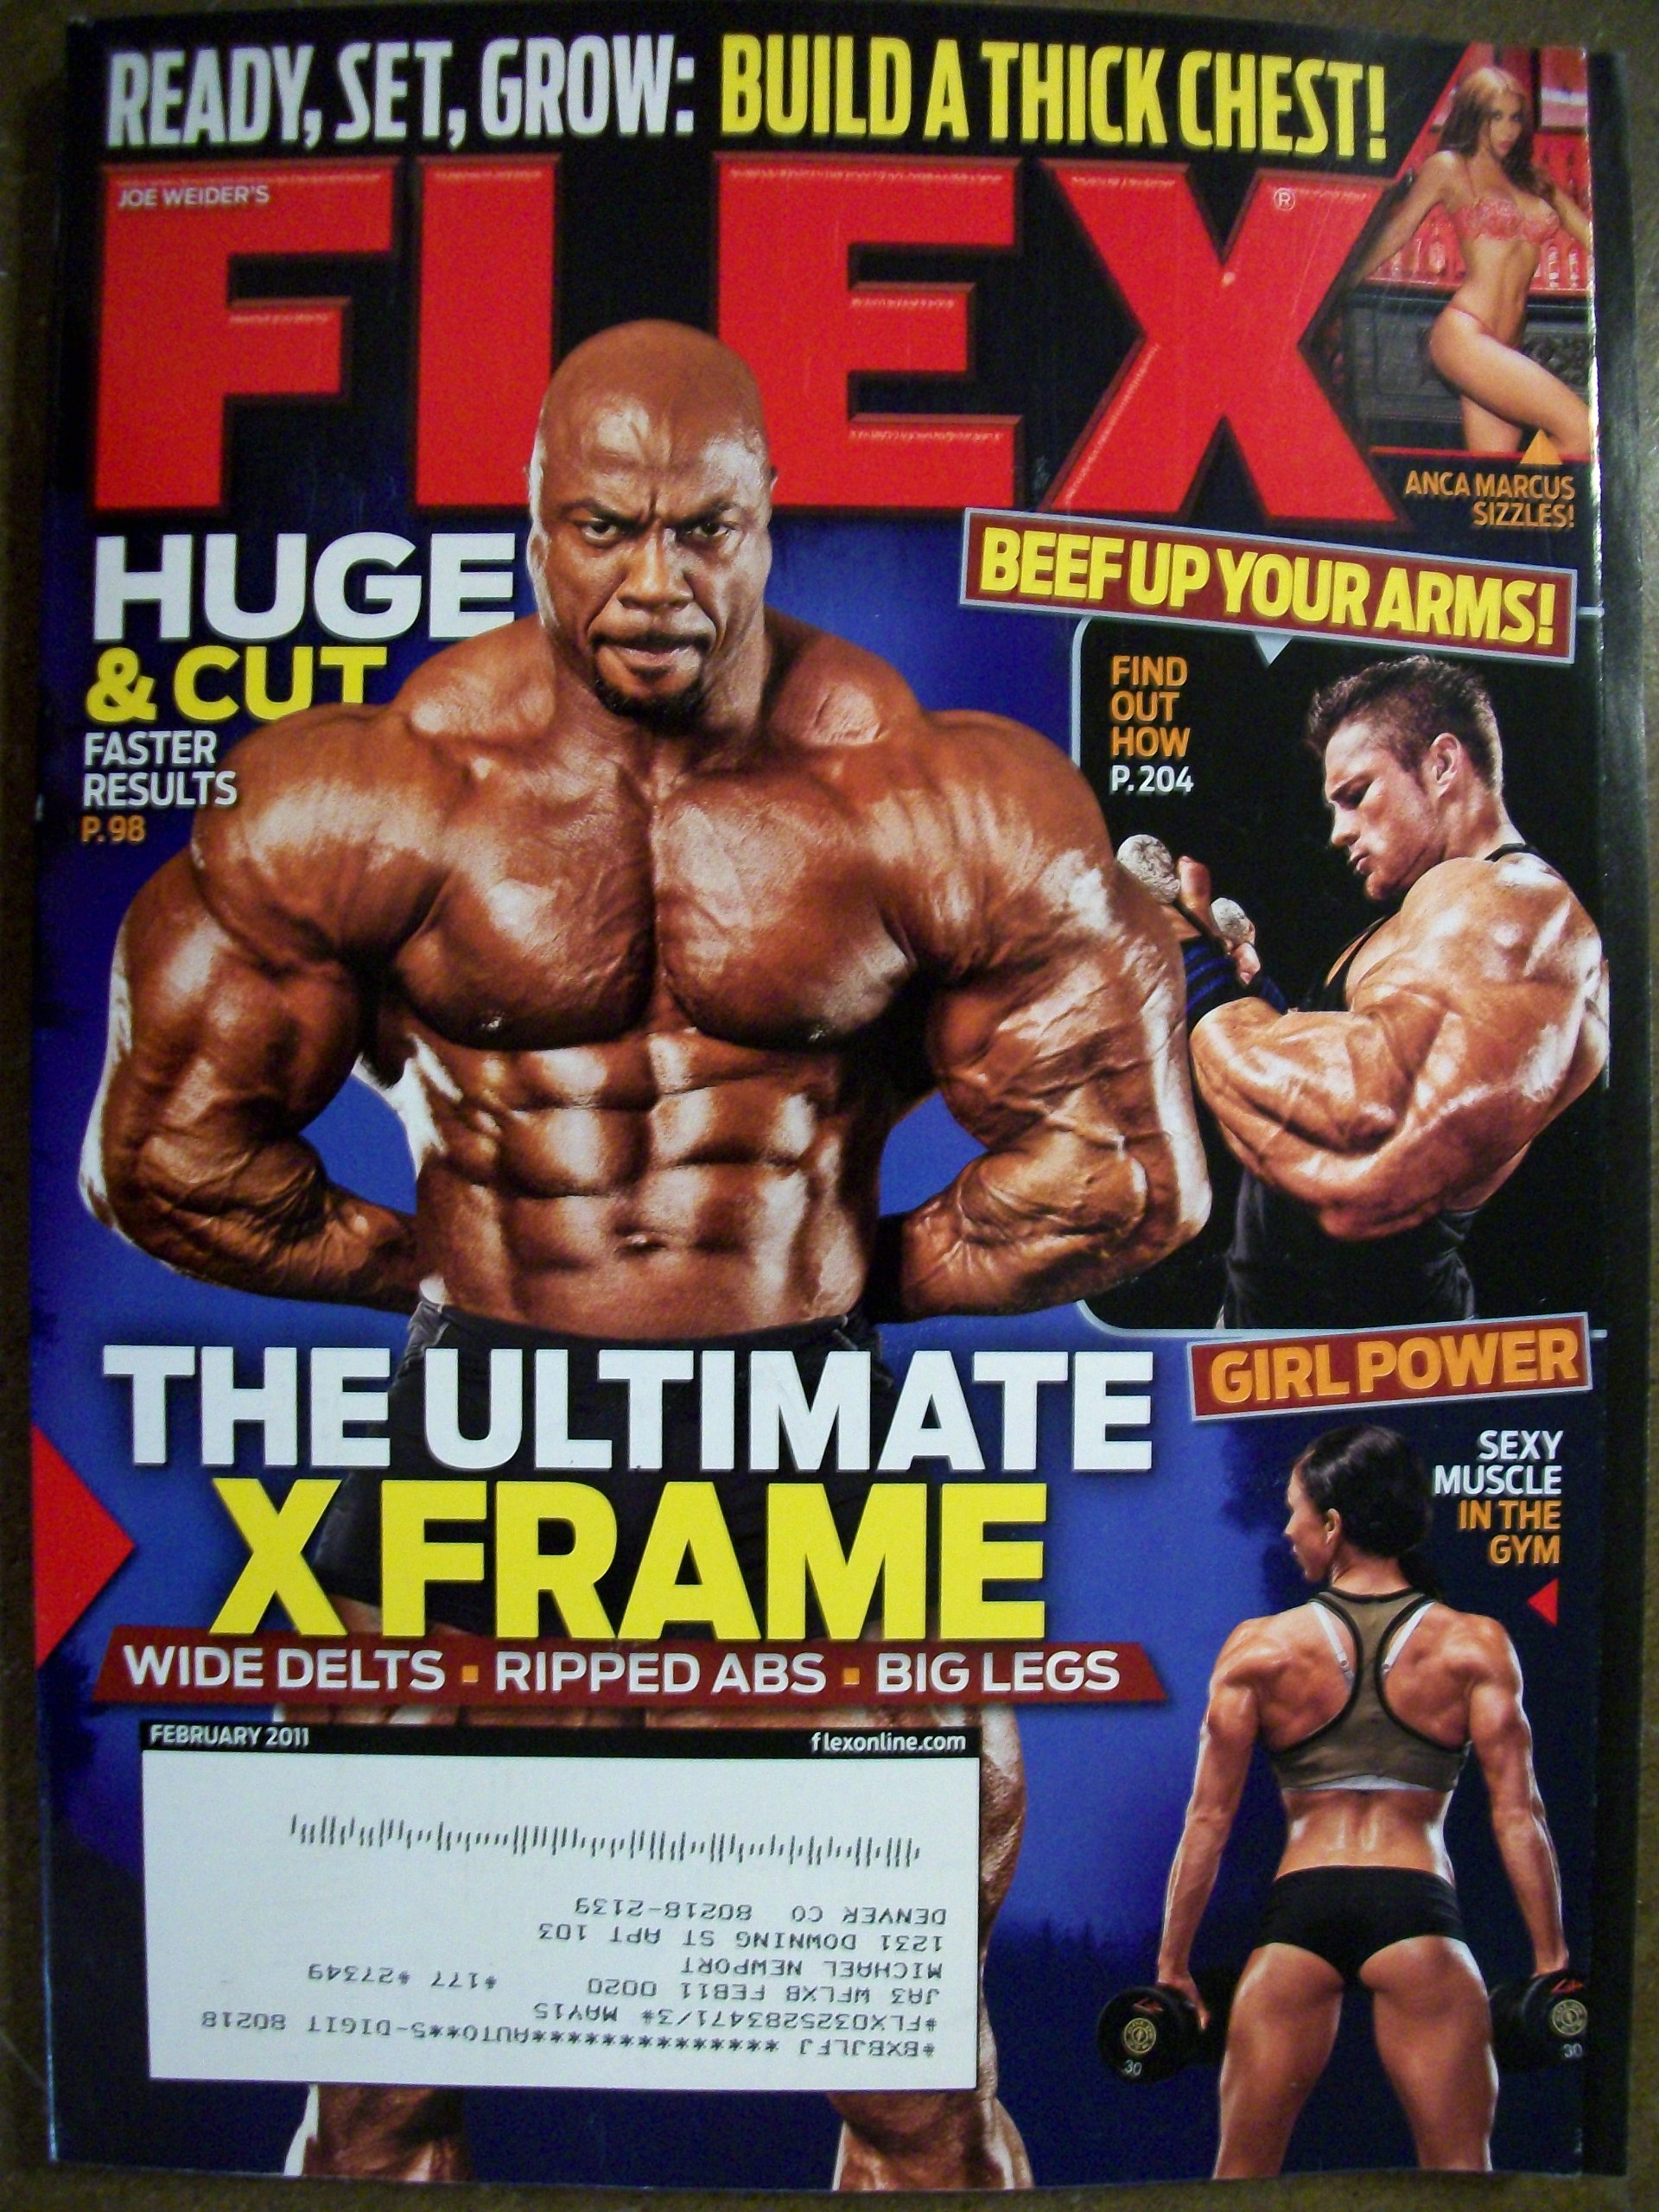 Flex February 2011 The Ultimate X Frame Build a Thick Chest Sexy Muscle in  the Gym: Joe Weider: Amazon.com: Books